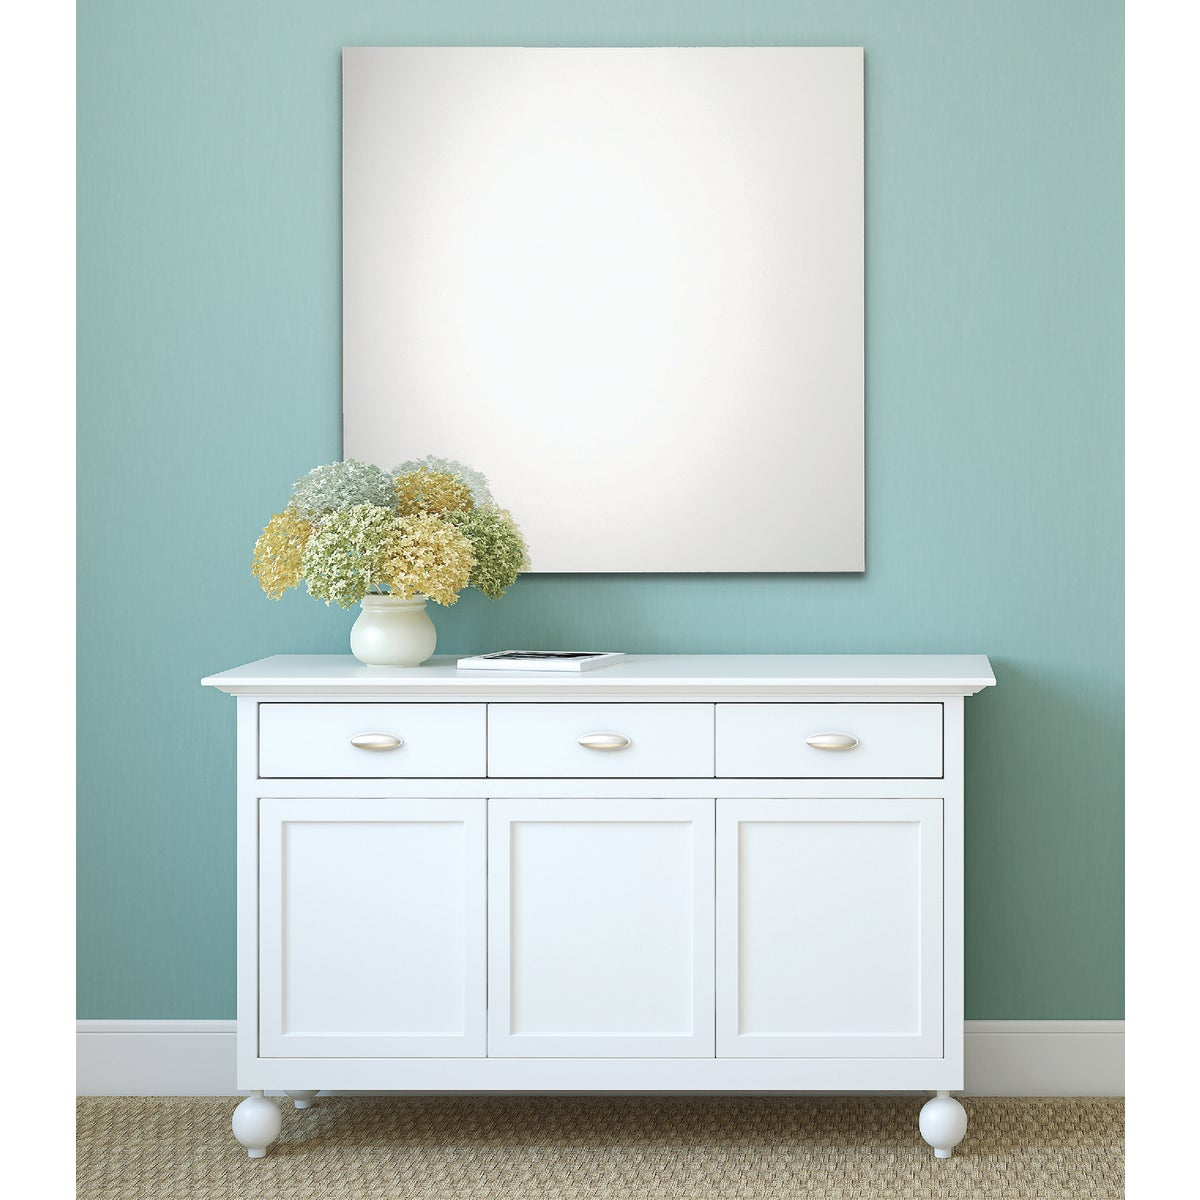 36X36 FMLS POL ED MIRROR - 20-1324 by Home Decor Innovatns